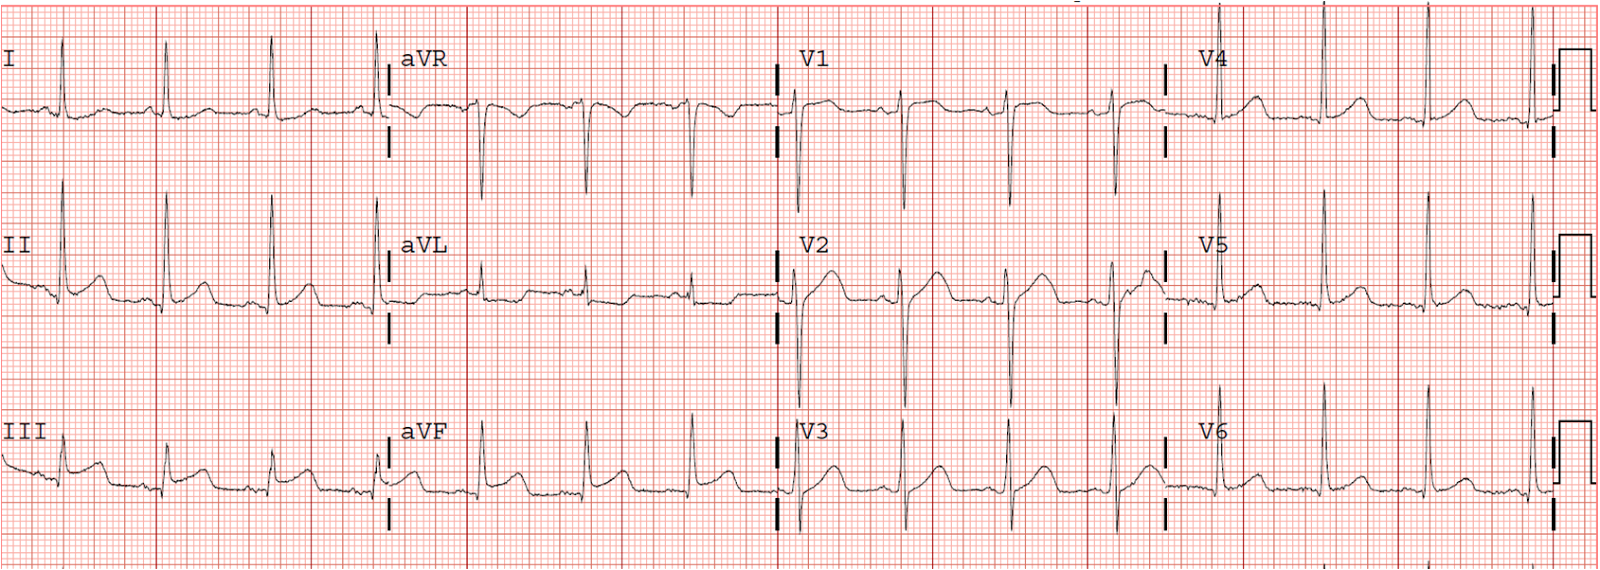 Dr. Smith's ECG Blog: 24 yo woman with chest pain: Is this STEMI ...